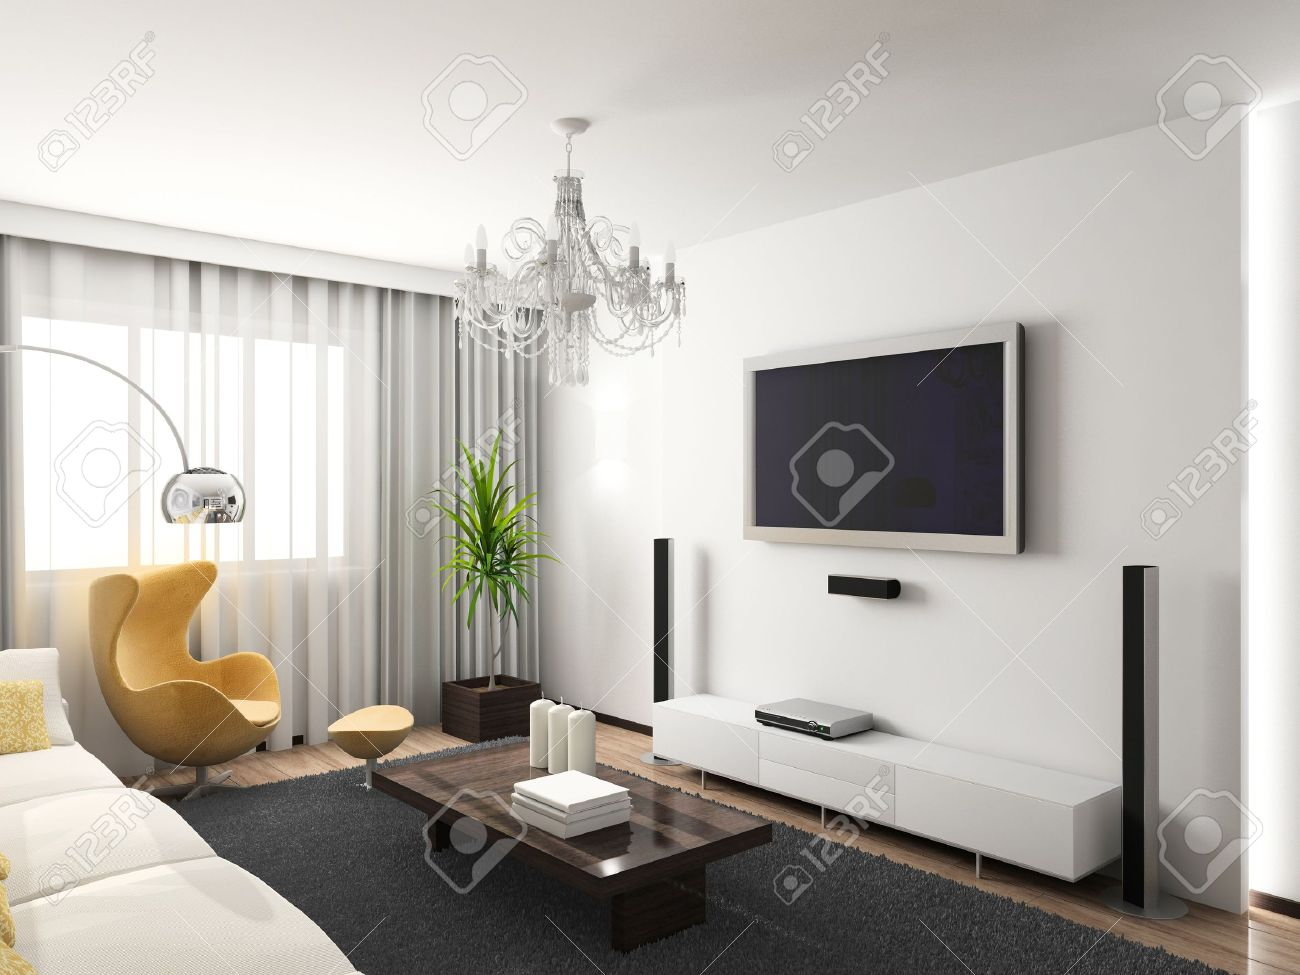 Floral design in circle stock vector image 75615991 - Grey Rug Modern Interior 3d Render Living Room Exclusive Design